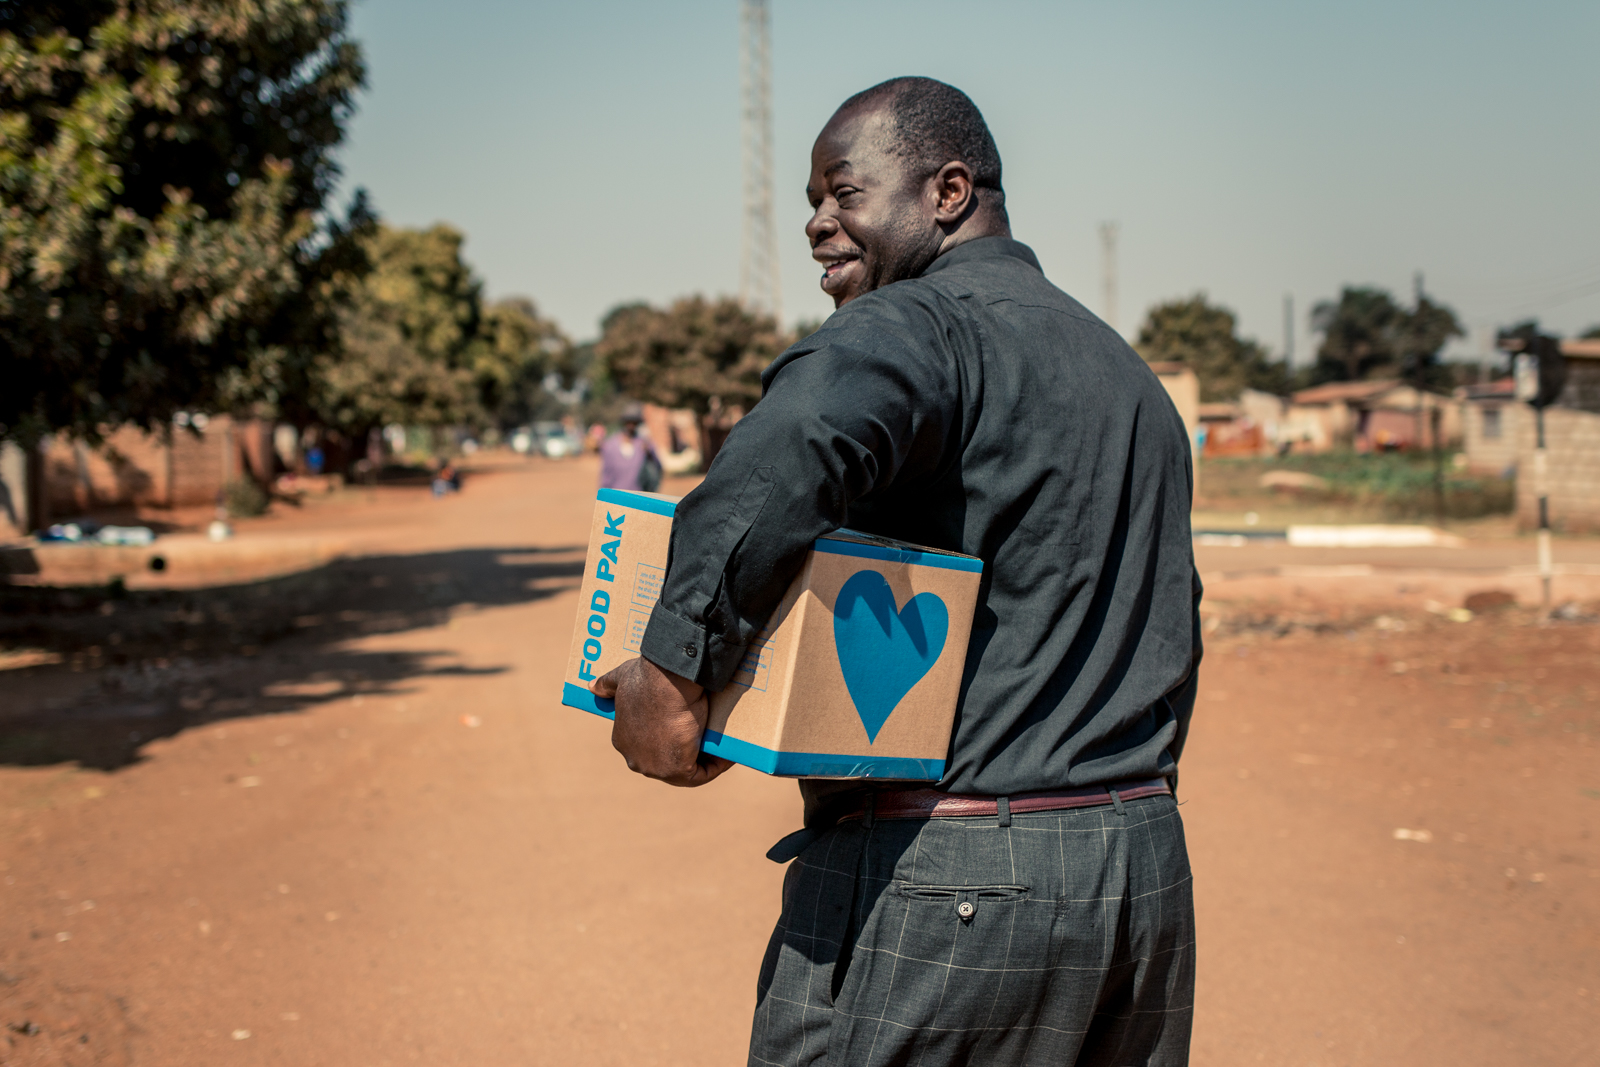 ZIMBABWE: [Home Visit] This is Bishop Musakwa. He's smiling as we walked to his home to share this food box with his family. Many times the pastors themselves are supported by the Food Pak ministry. We encourage the churches to prioritize meeting the needs of their congregations..    ..let us do good to everyone, and especially to those who are of the household of faith. -Gal 6:10